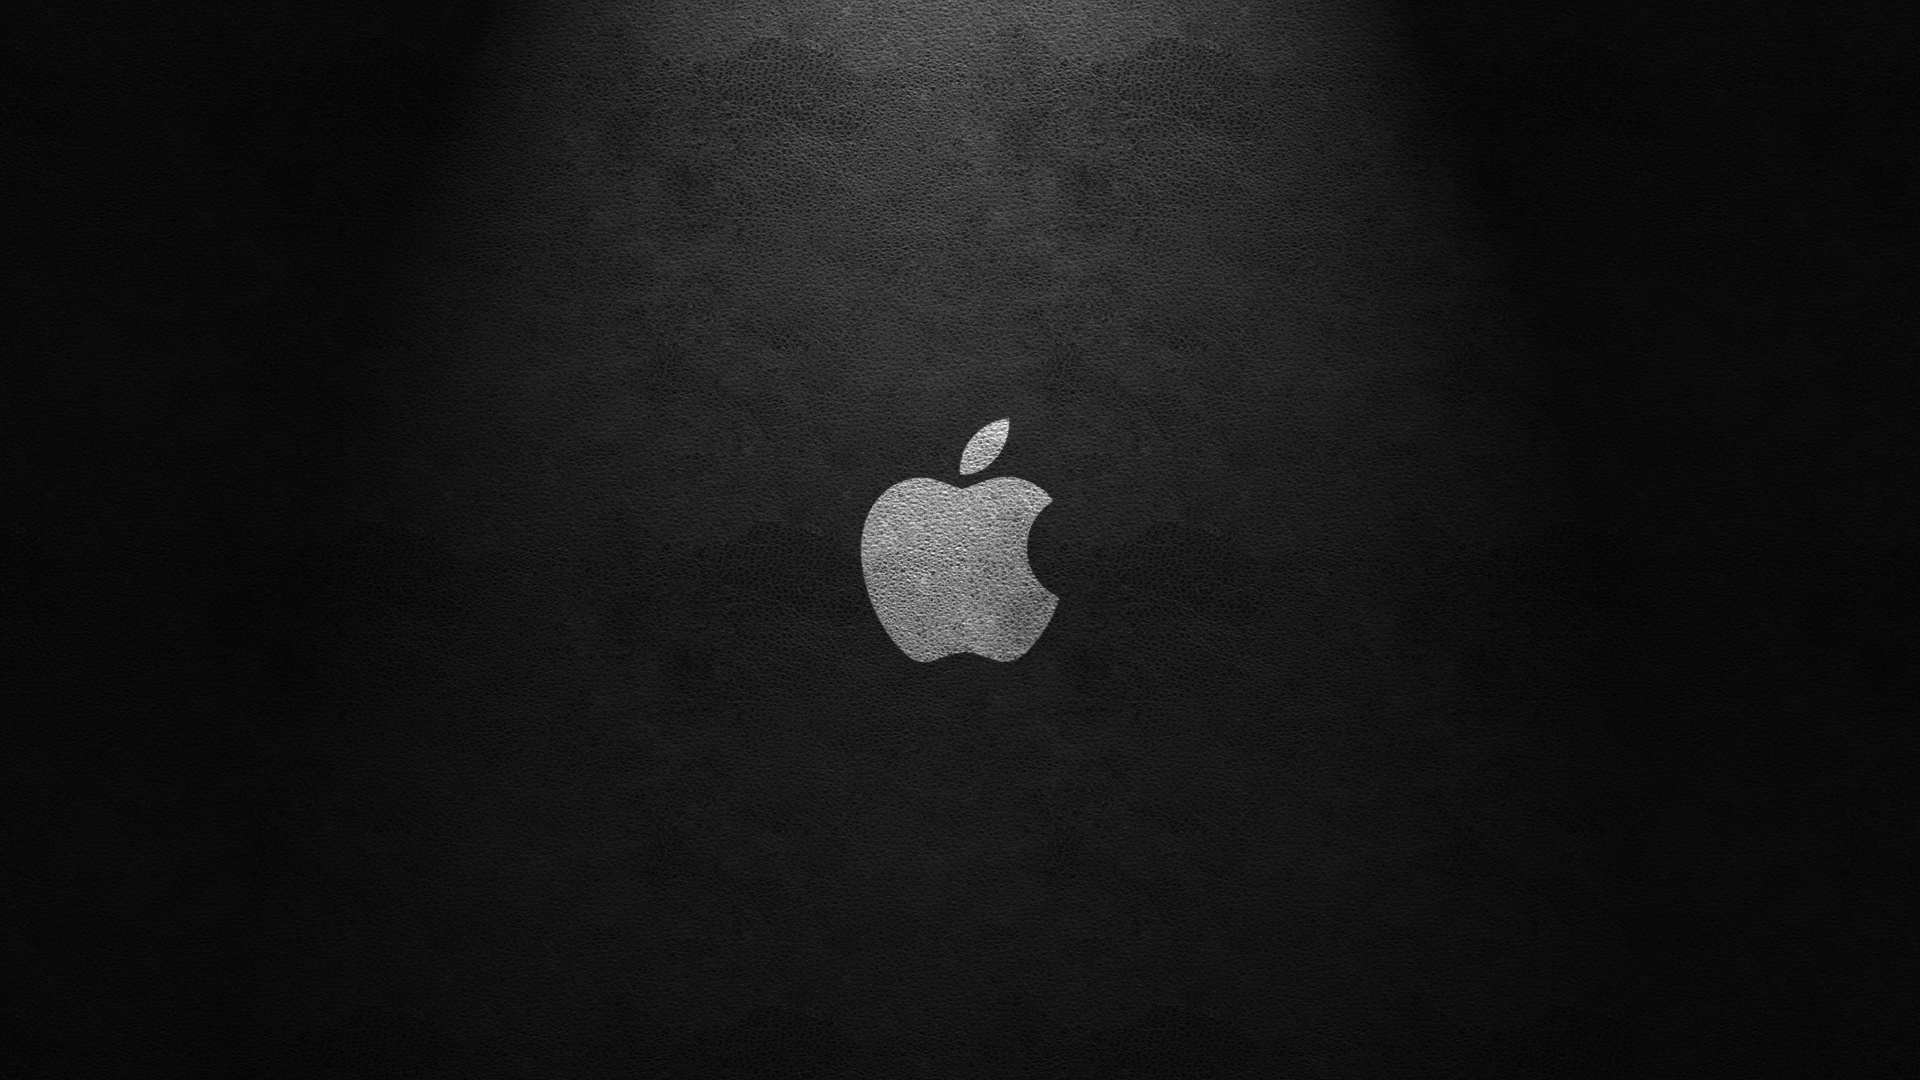 Apple 7dust